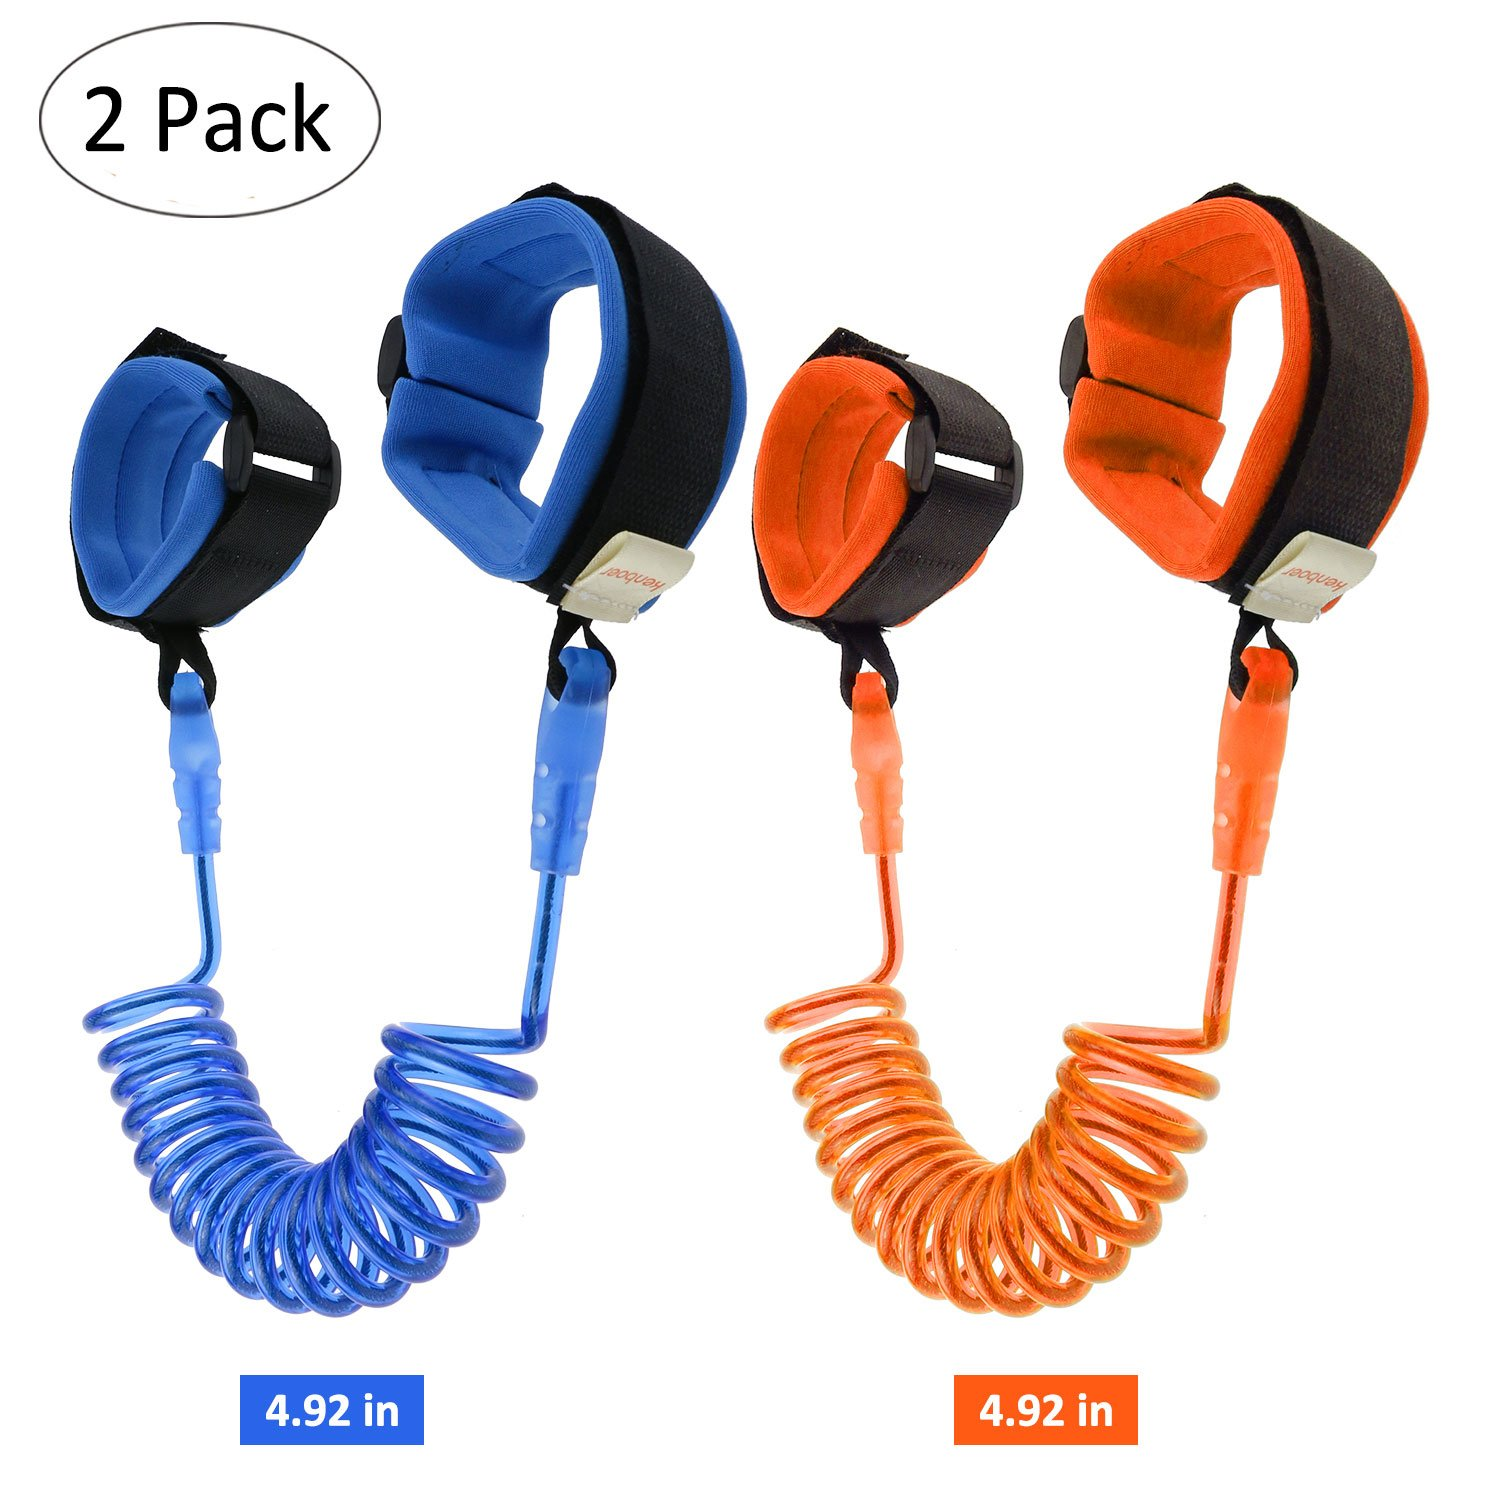 (2 Pack) Anti Lost Wrist Belt, Yokunat 1.5M/4.92ft Baby Toddler Reins Safety Leash Wristband Child Safety Wrist Link Leash Harness Flexible Traveling Shopping Exploring Helper